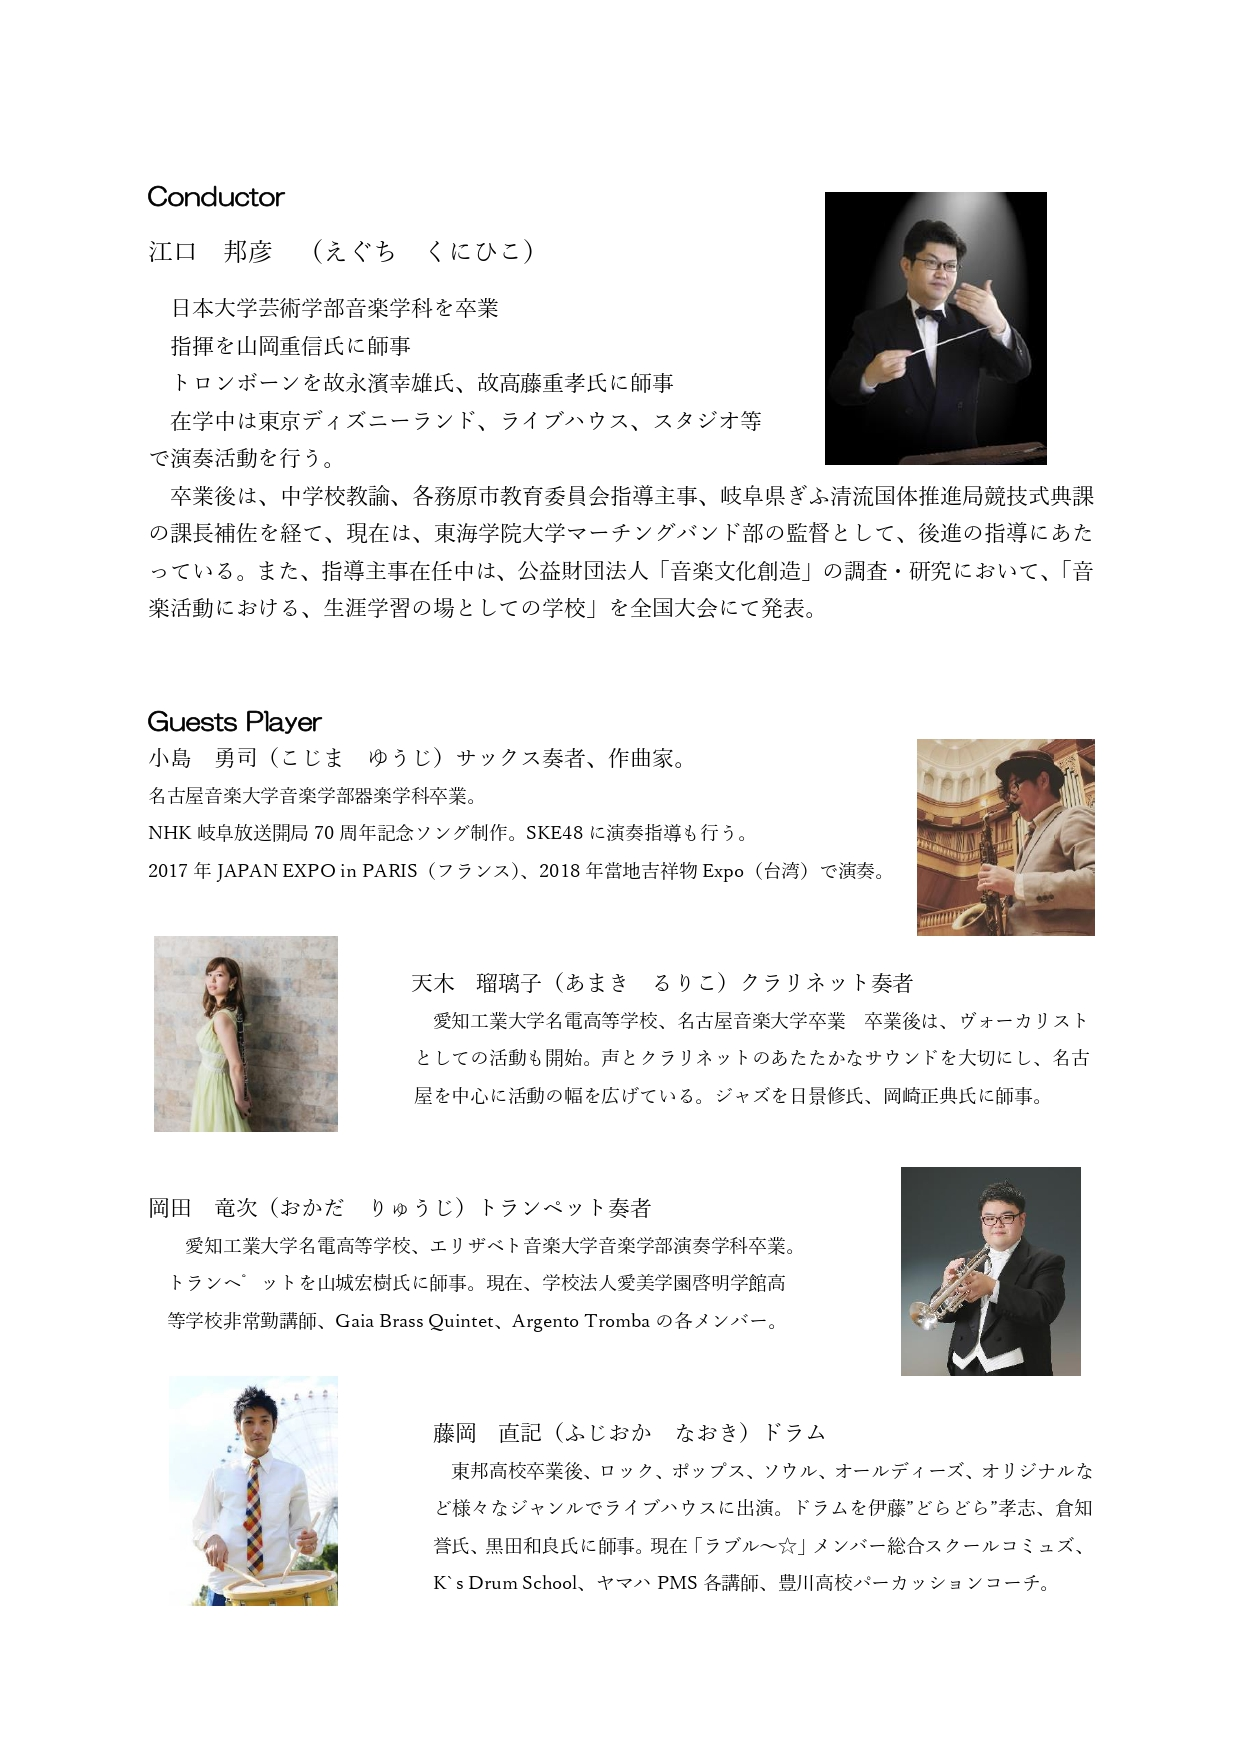 _________page-0002